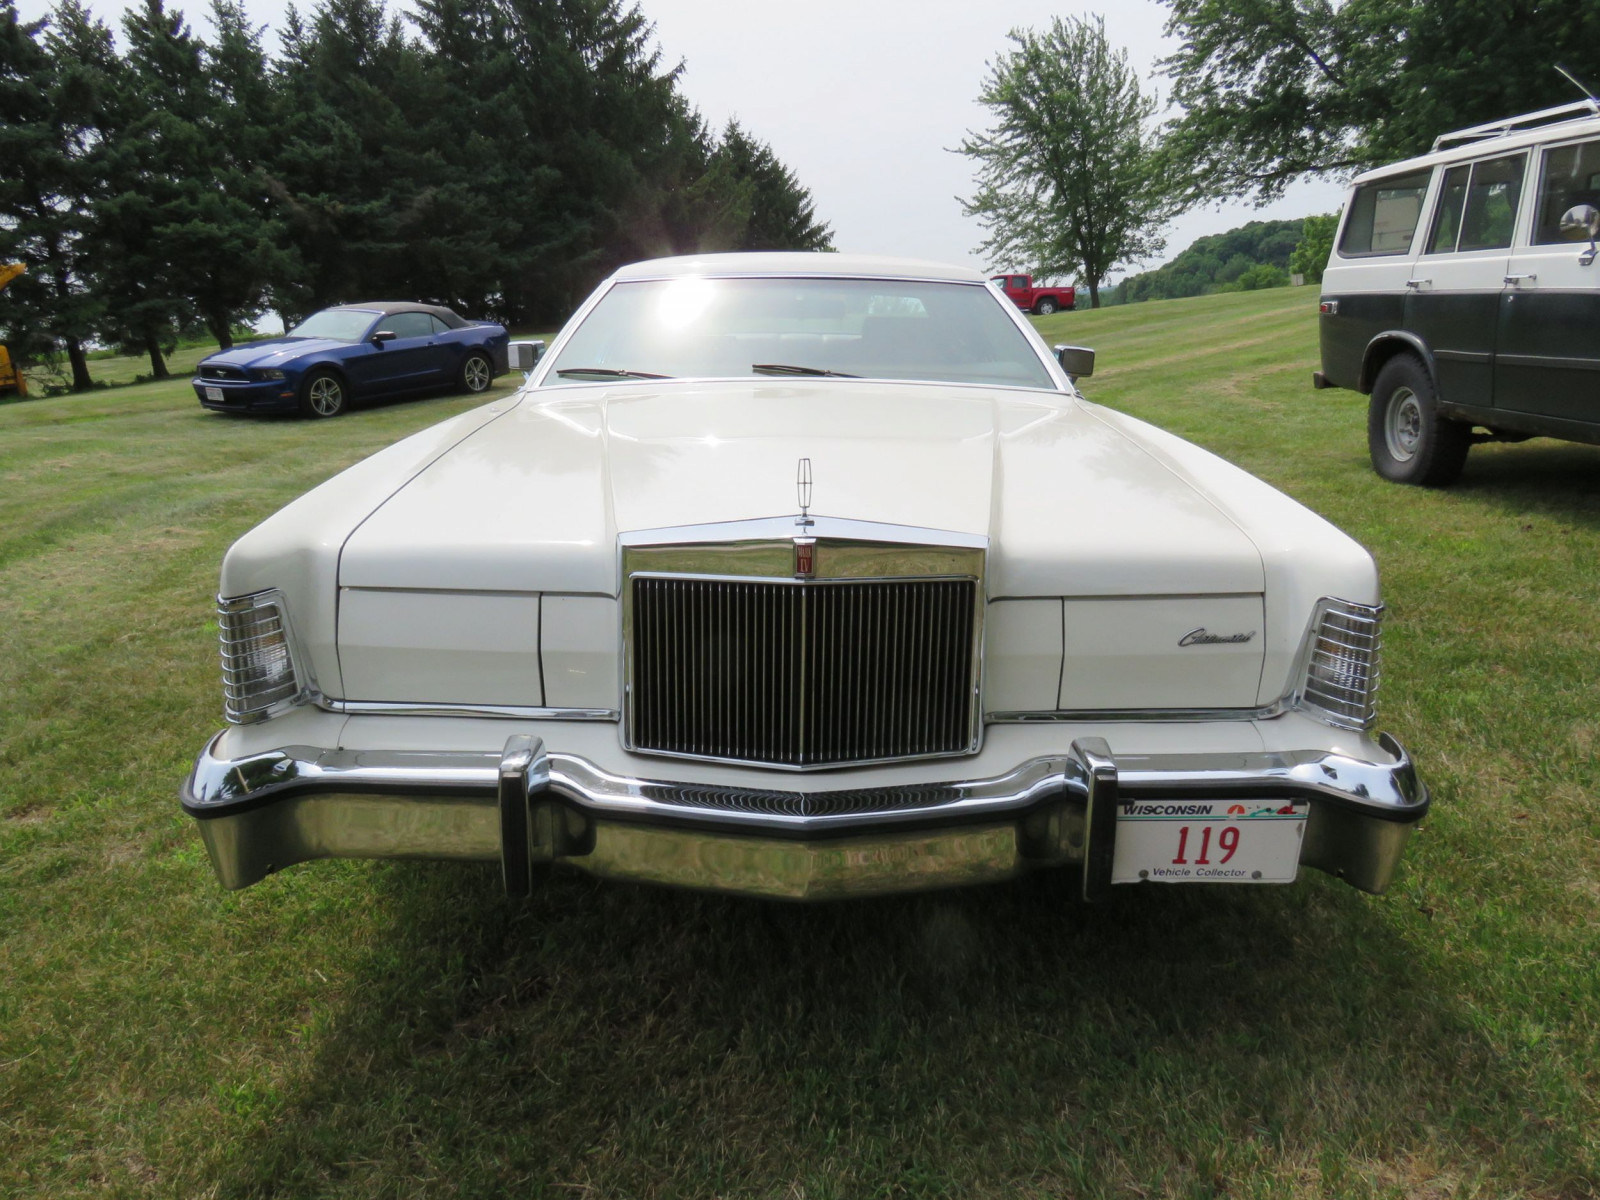 1976 Lincoln Continental Mark VI Coupe - Image 2